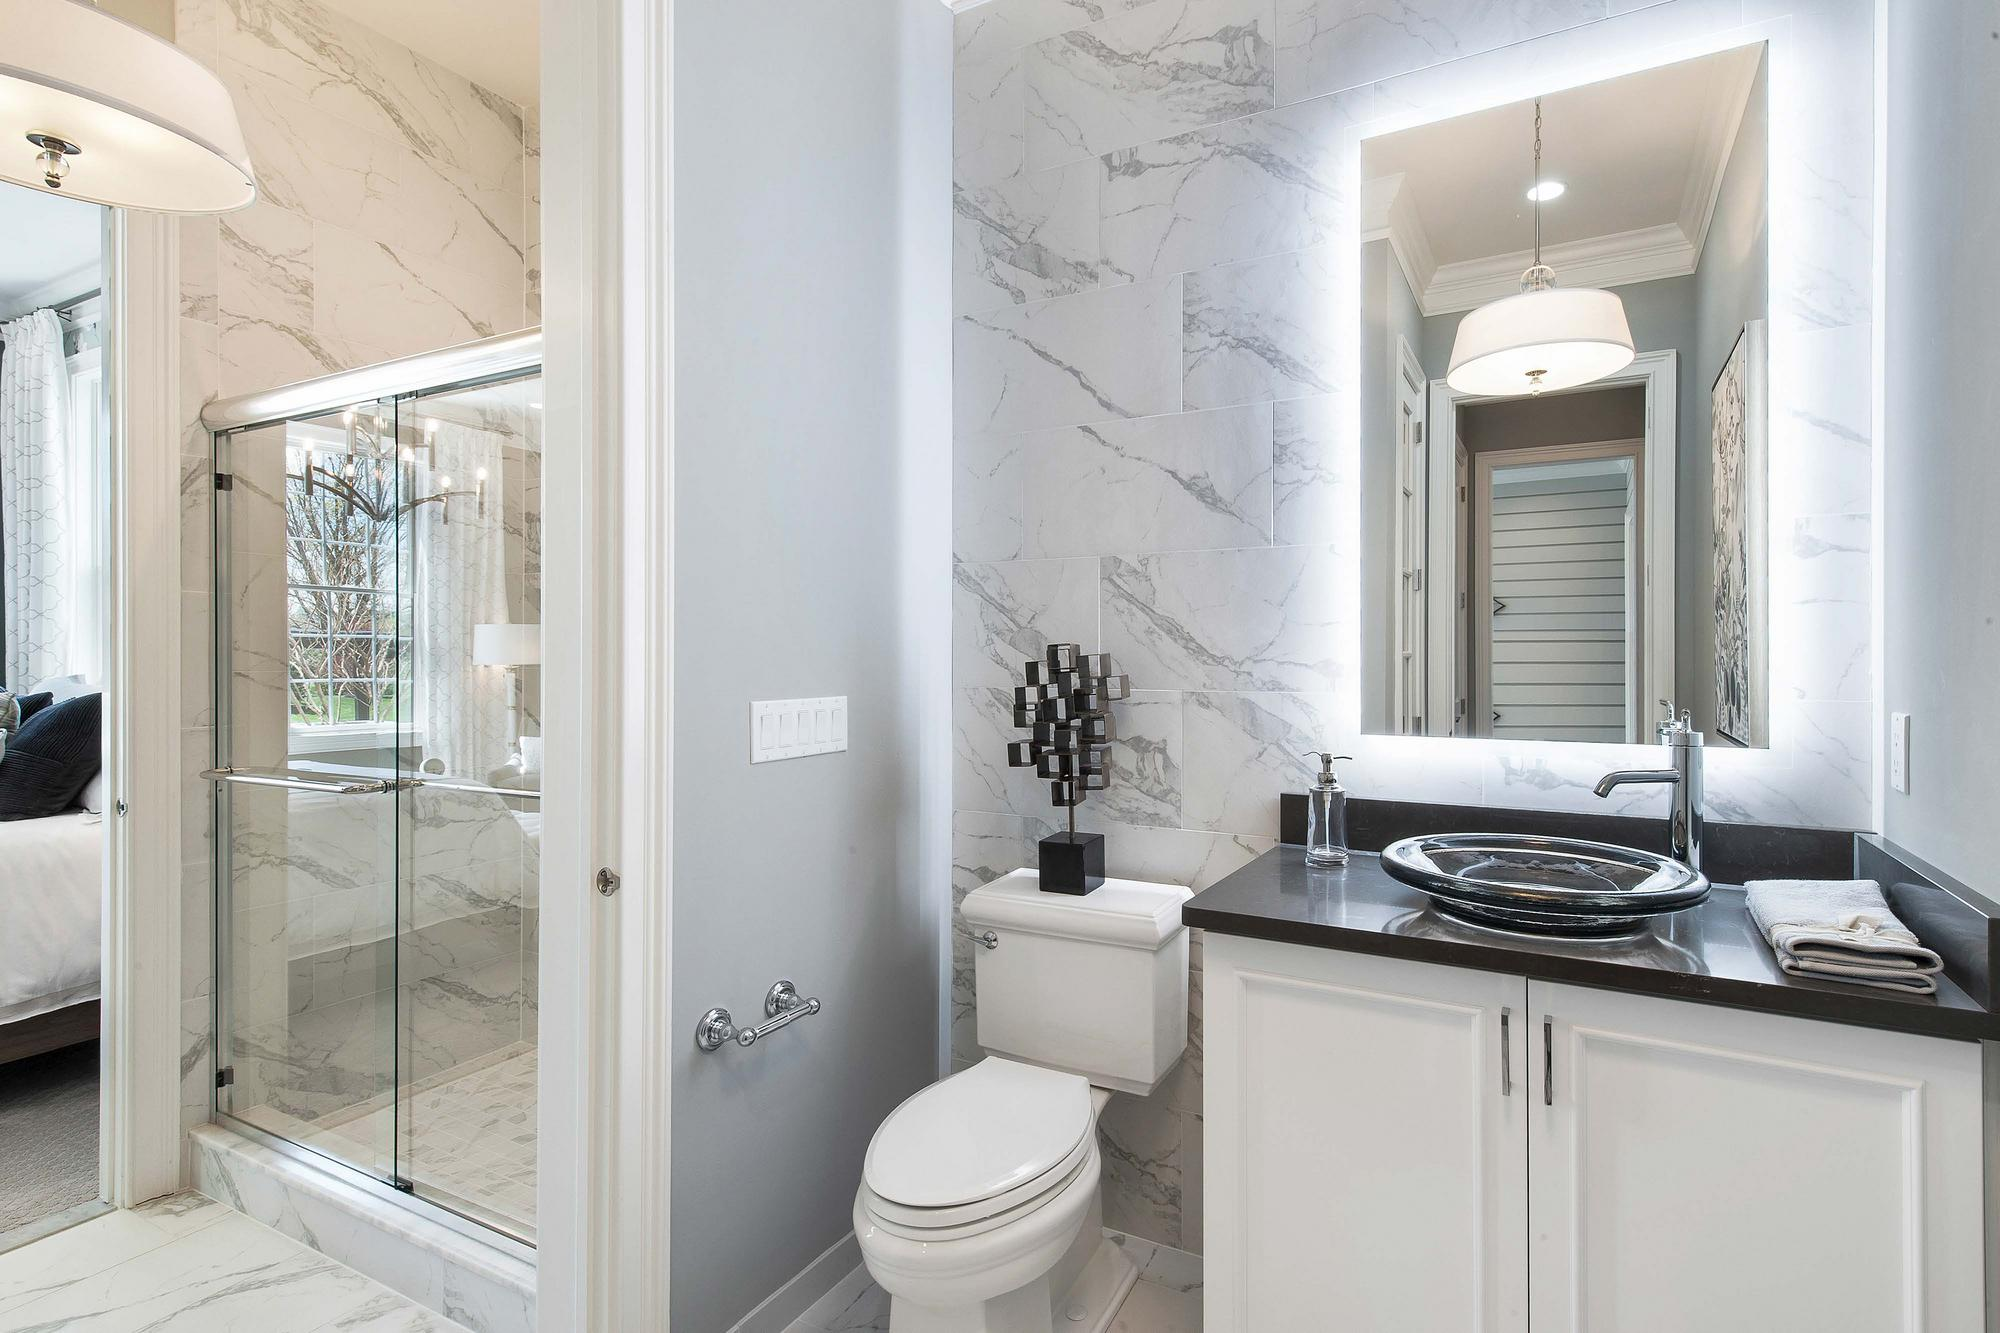 Bathroom with modern lighting and fixtures.